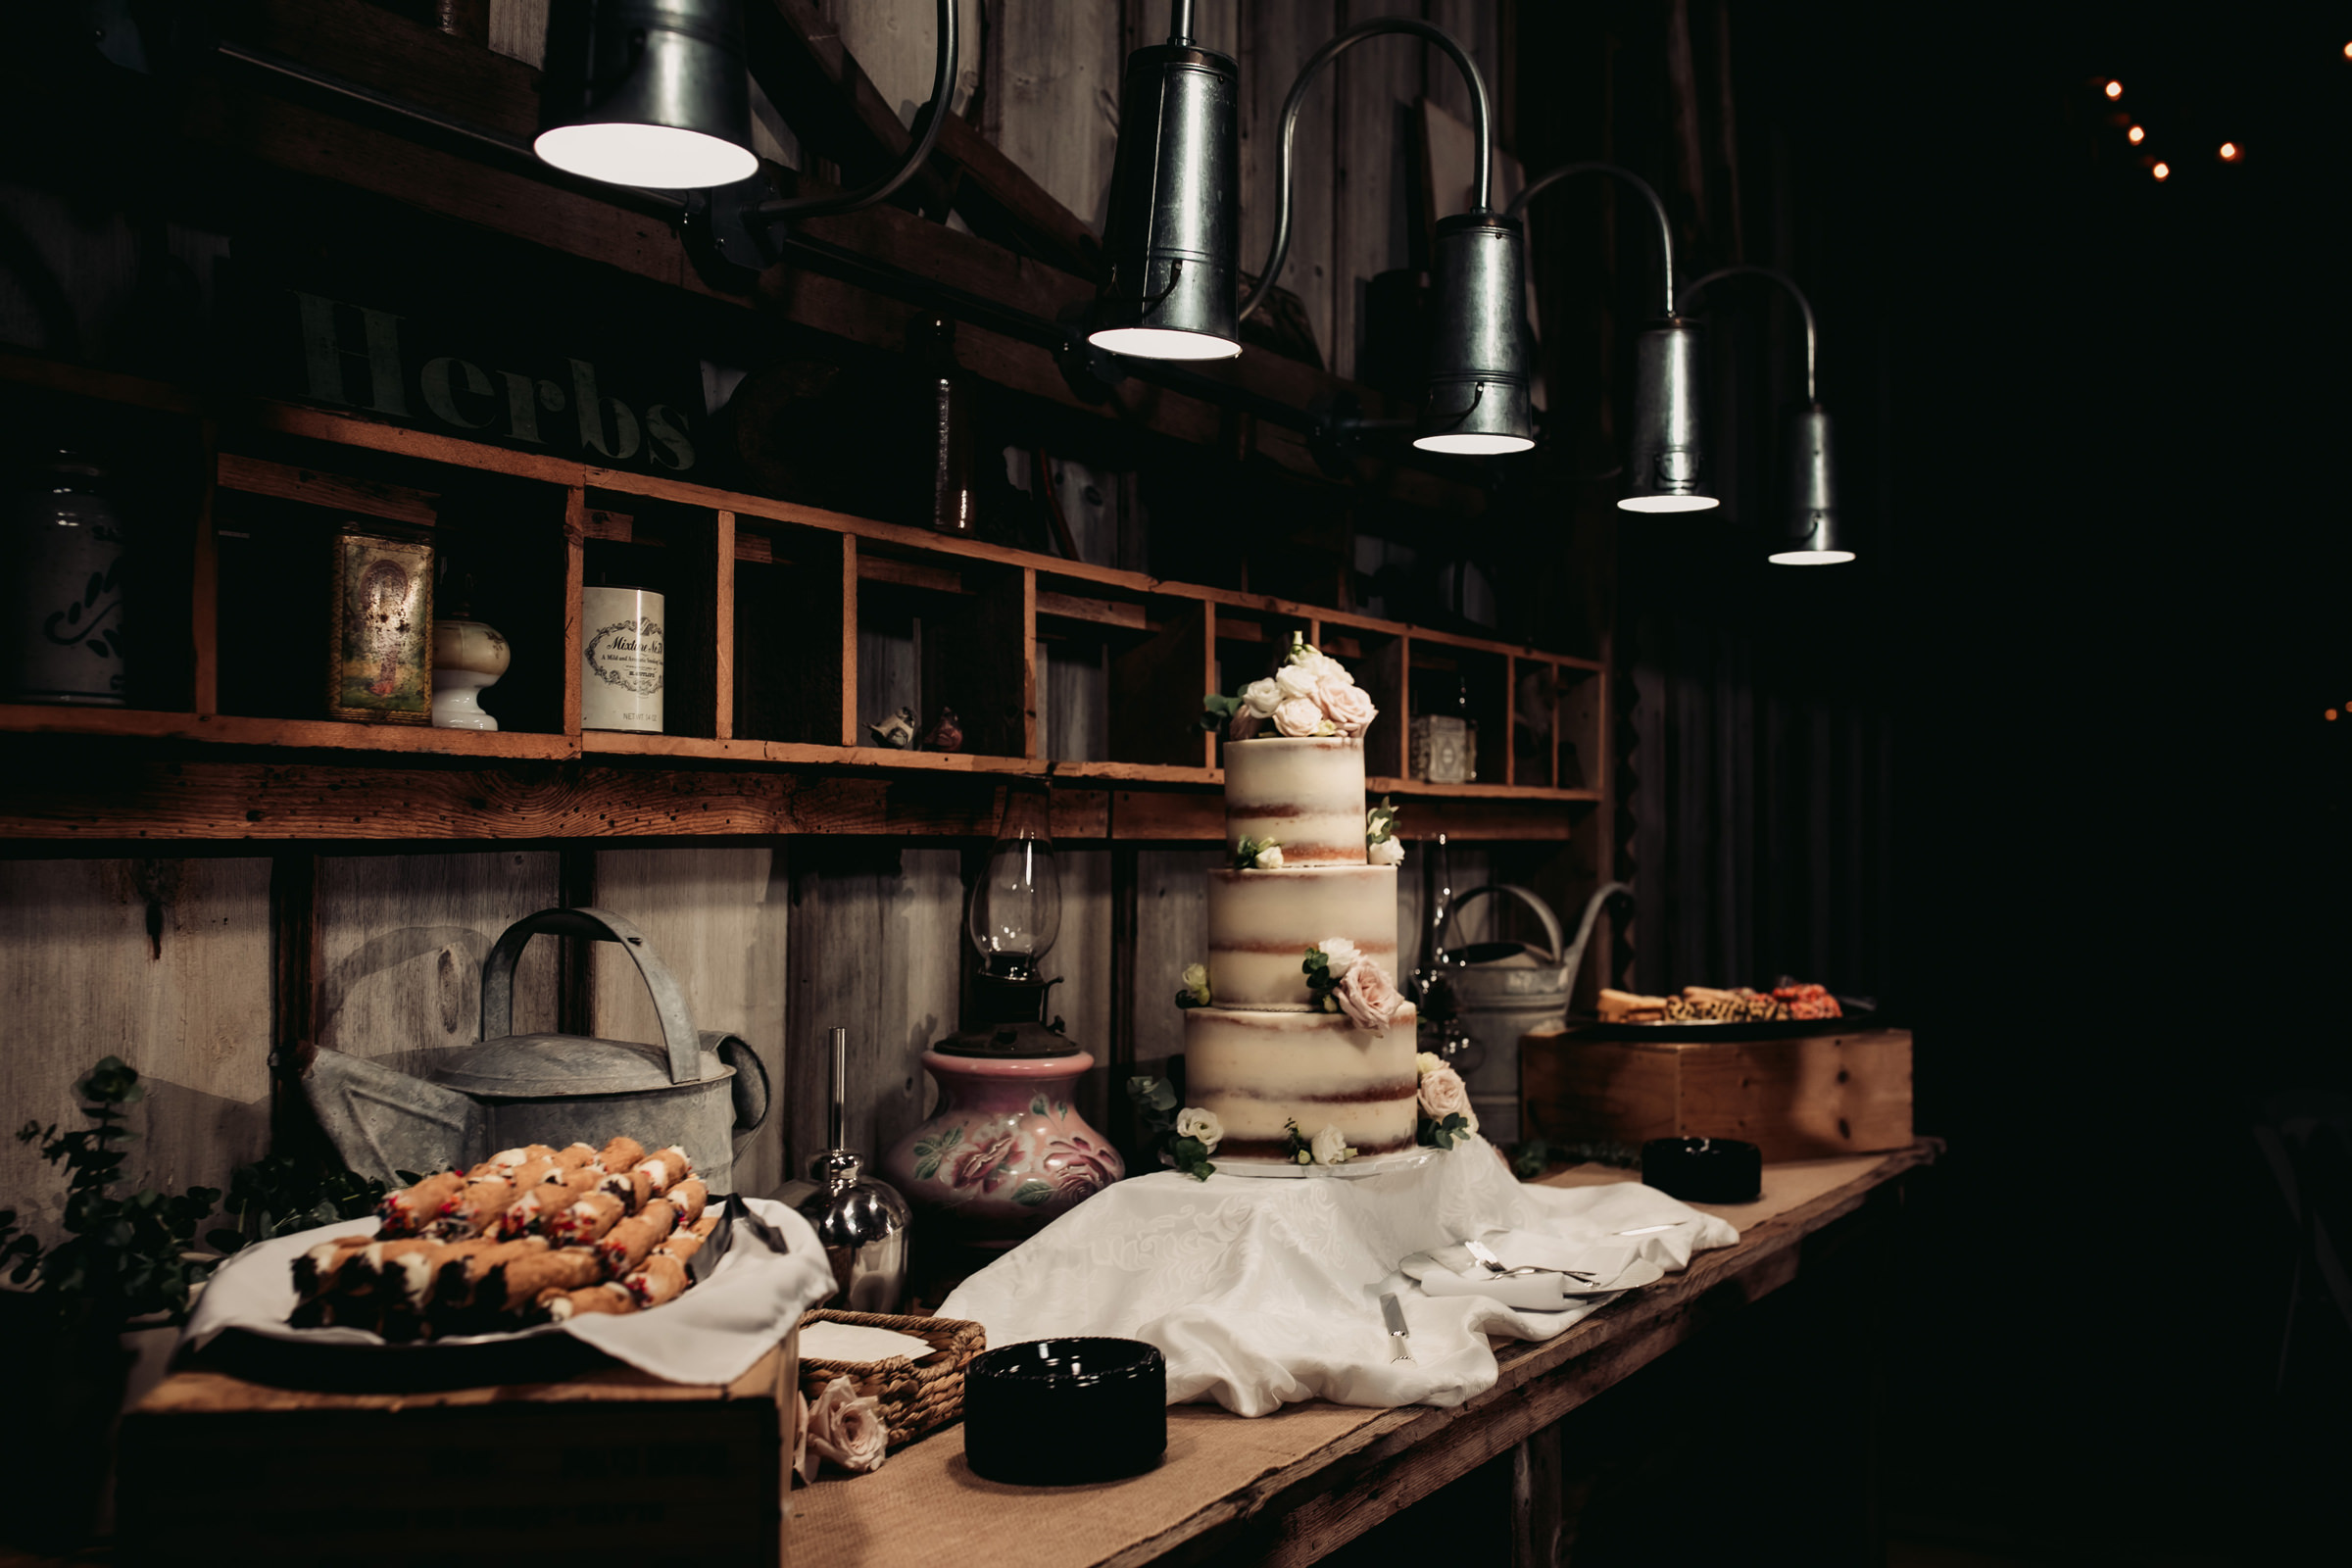 tiered-cake-and-platter-of-canolis-in-rustic-kitchen-setting-mike-zawadzki-photography